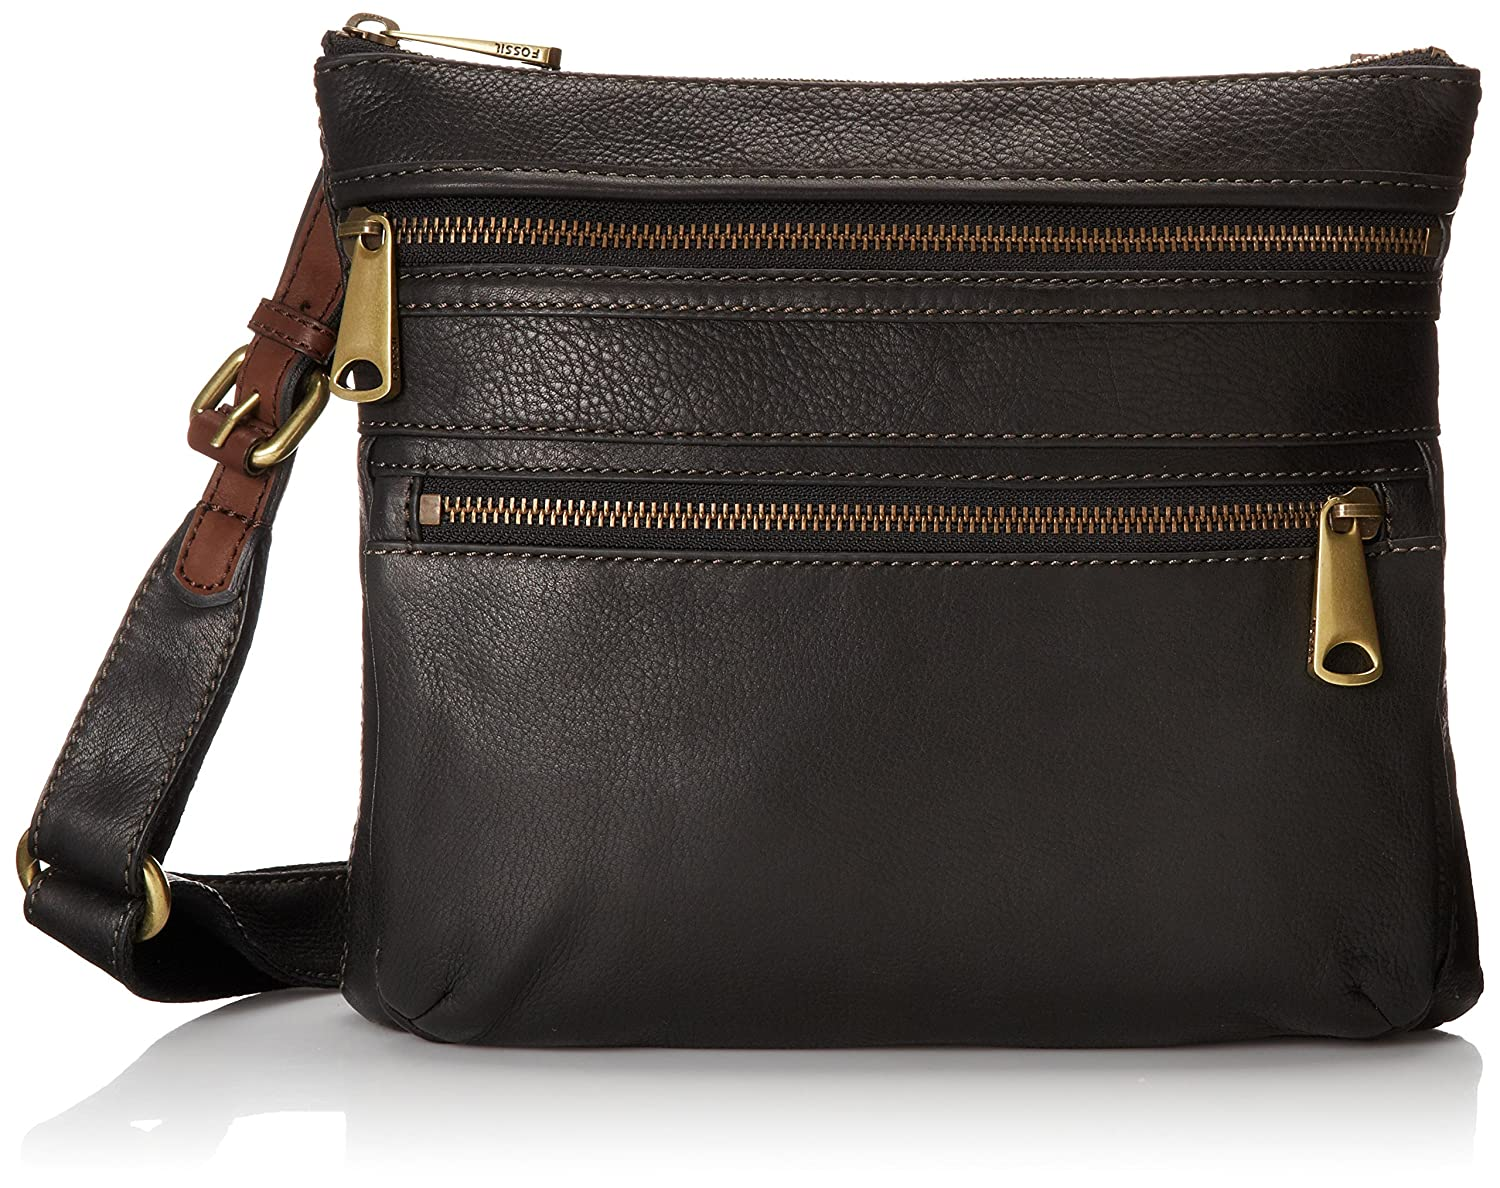 Fossil Explorer Cross Body Bag, Black, One Size: Amazon.ca: Clothing &  Accessories